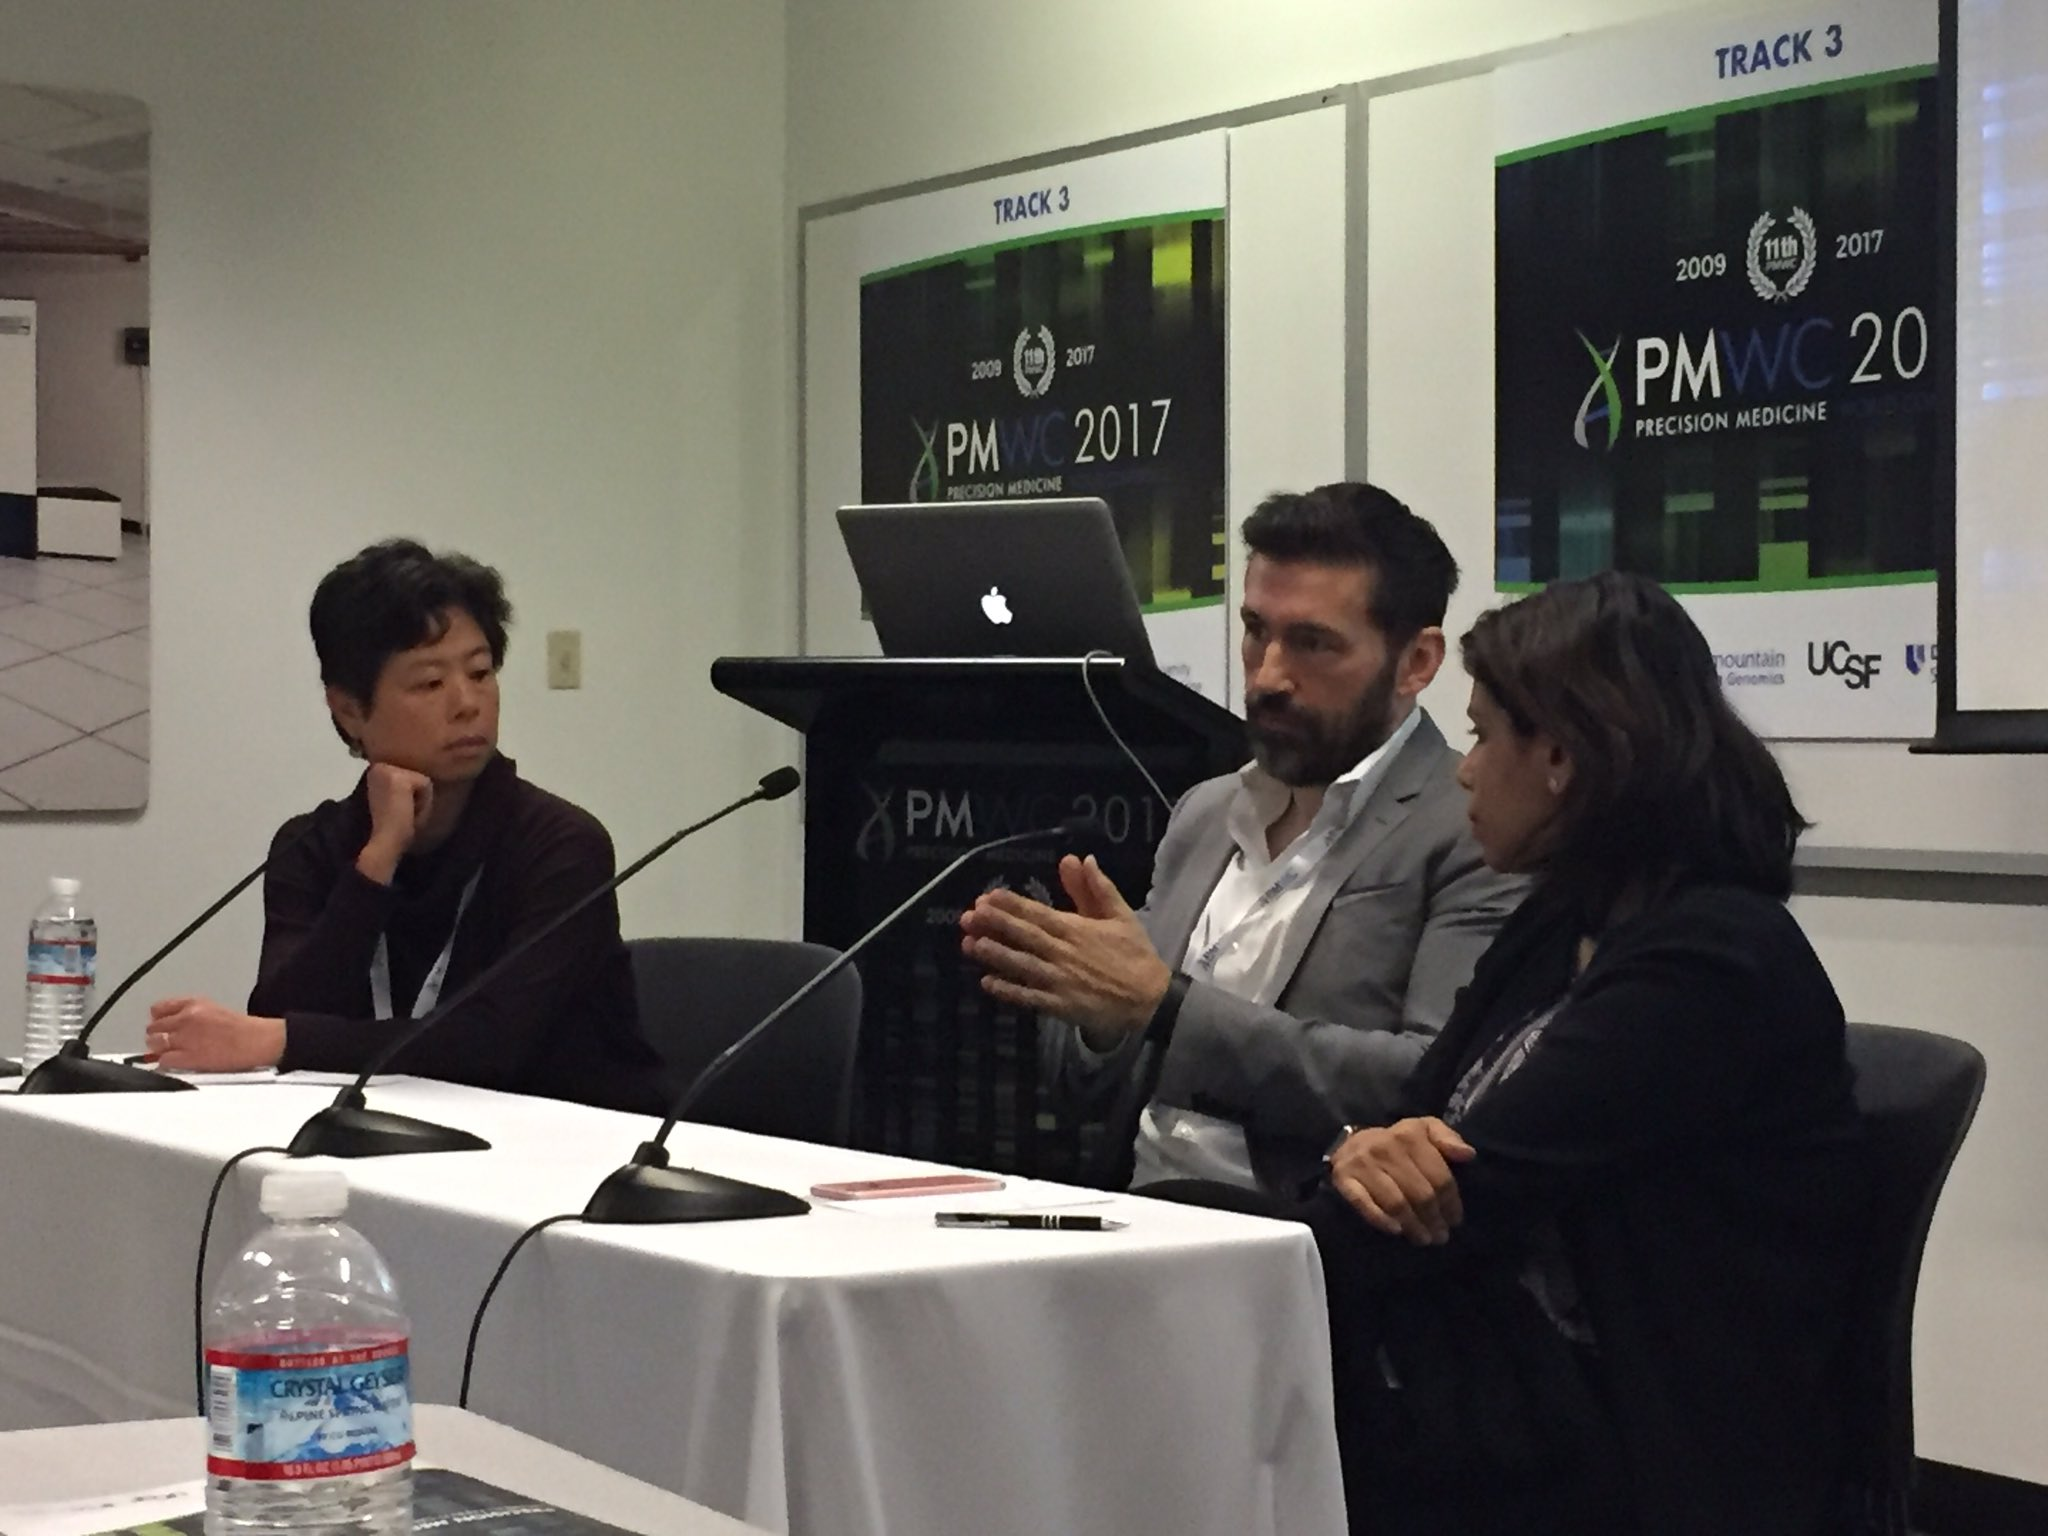 .@RyanHowardCEO #Telemedicine is biggest opportunity in #healthcare- not cracked the nut yet #digitalhealth #PMWC17 https://t.co/Ng7vzZLuPU